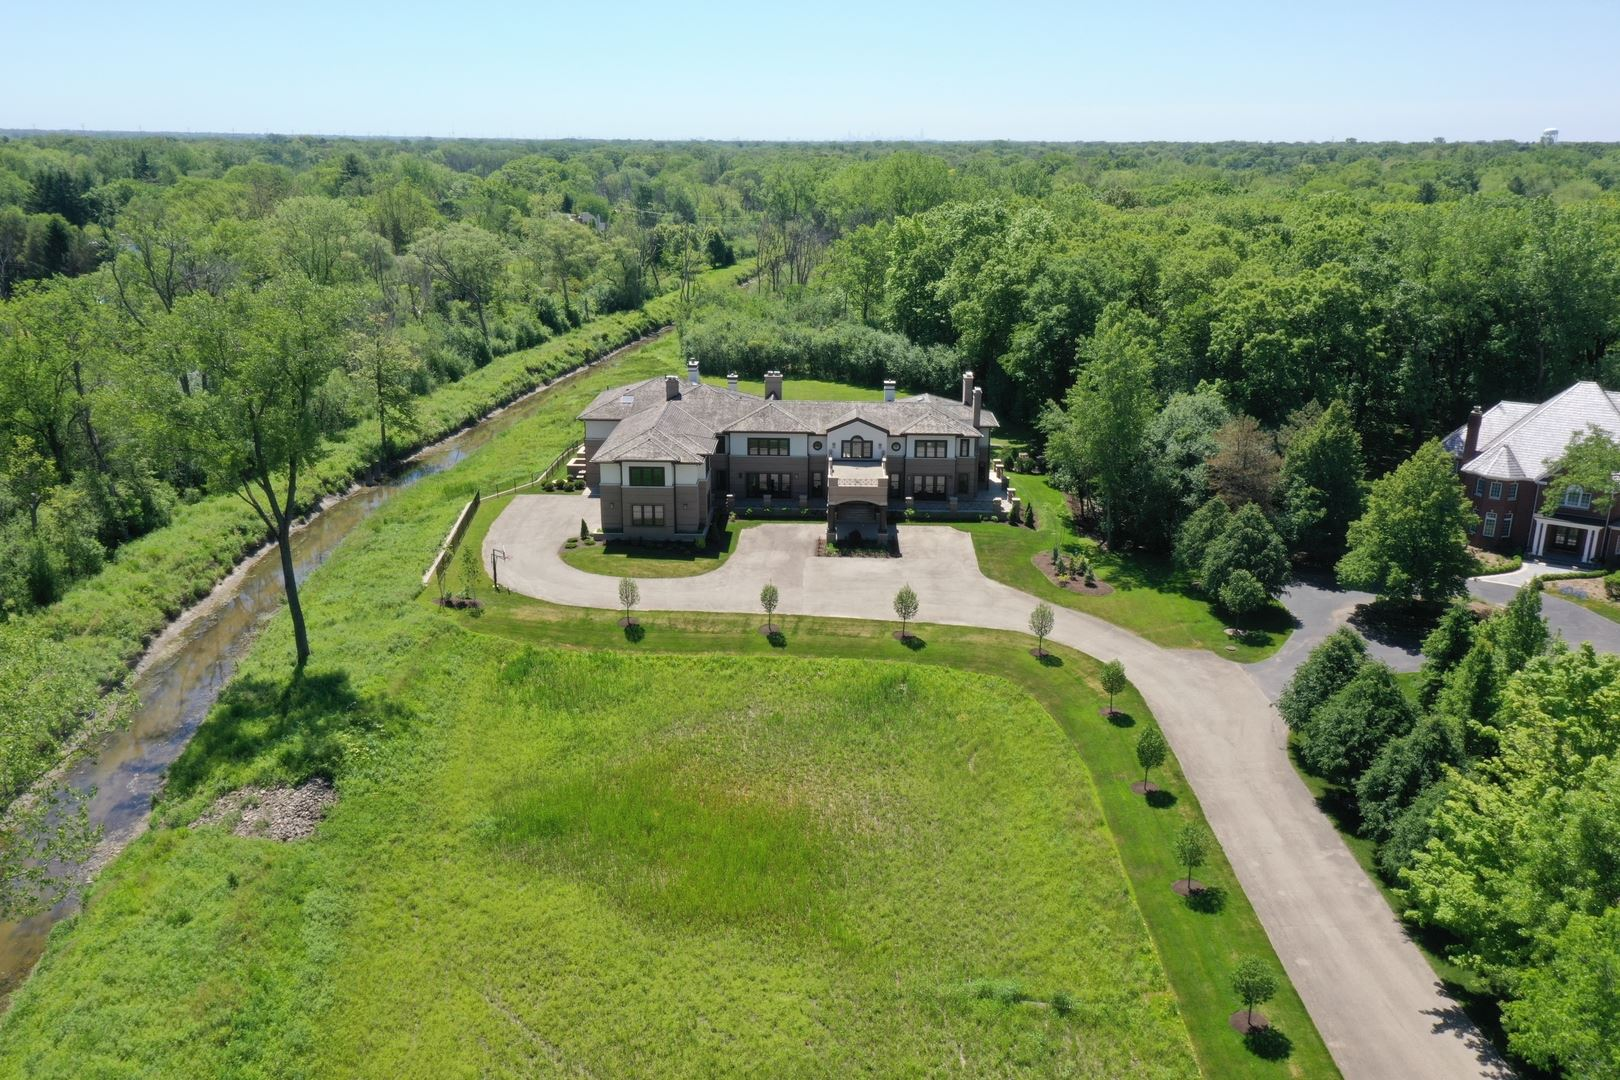 755 Summit Drive, Deerfield, IL 60015 - #: 10802427